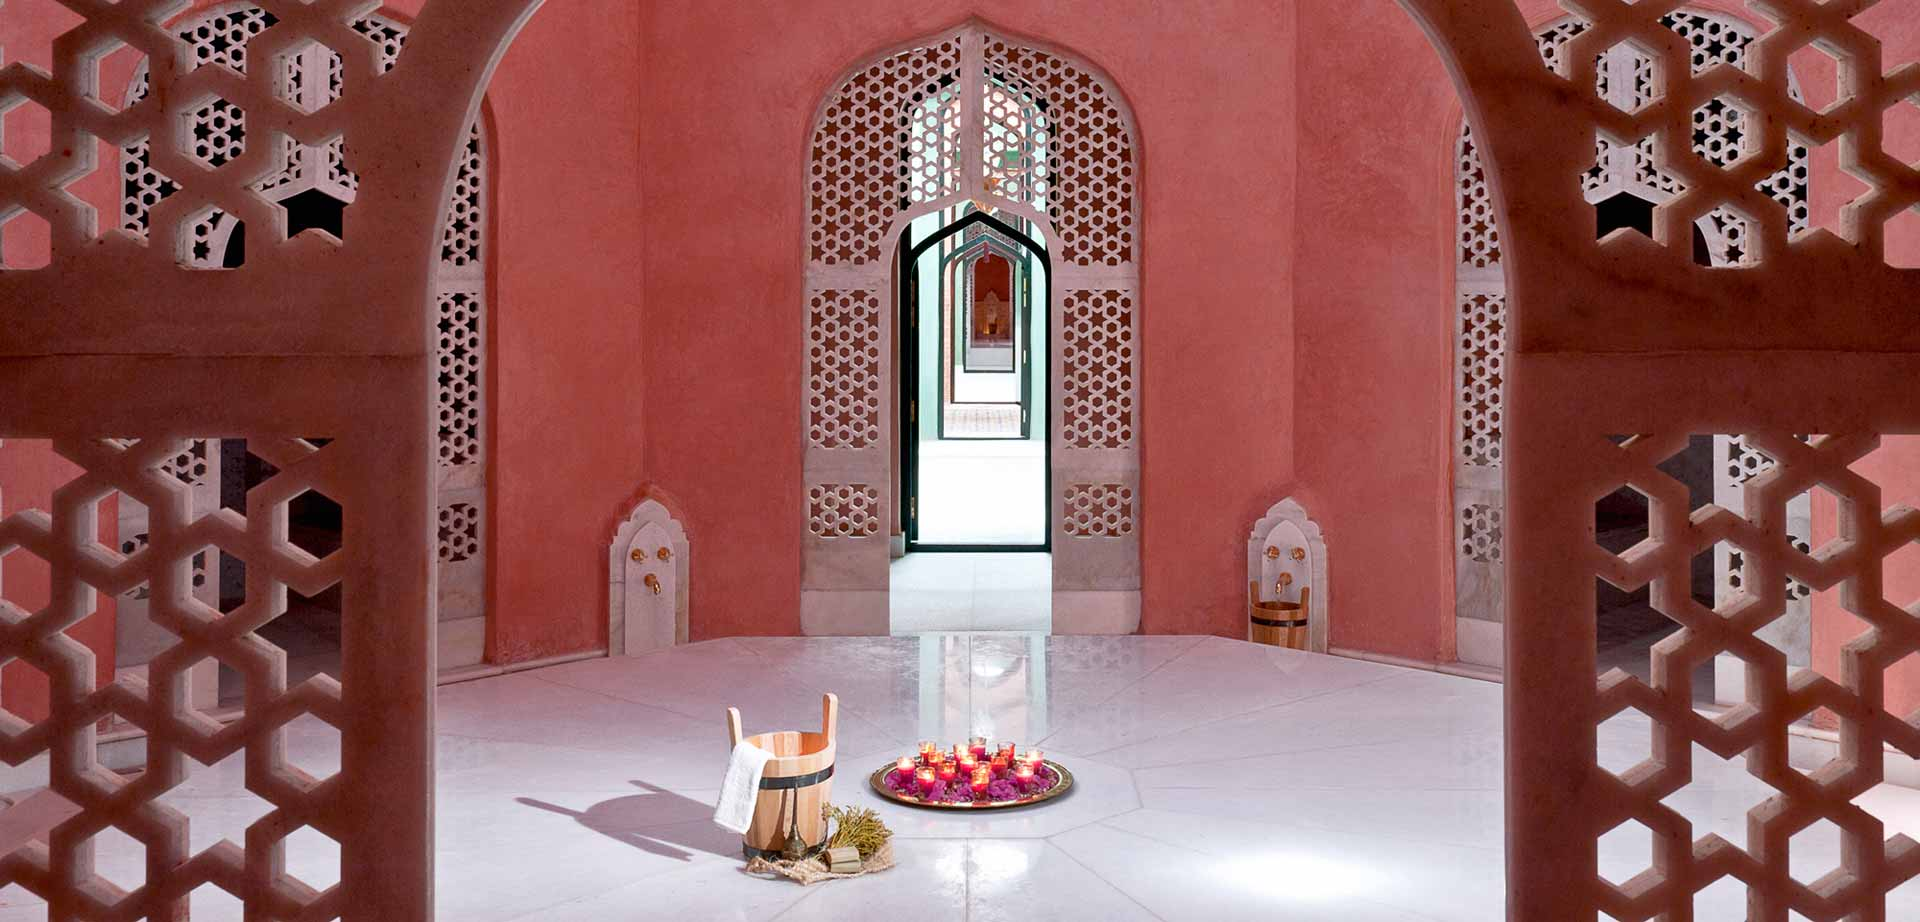 These Top 5 Luxury Hotels in Morocco Will Make You Believe in Magic